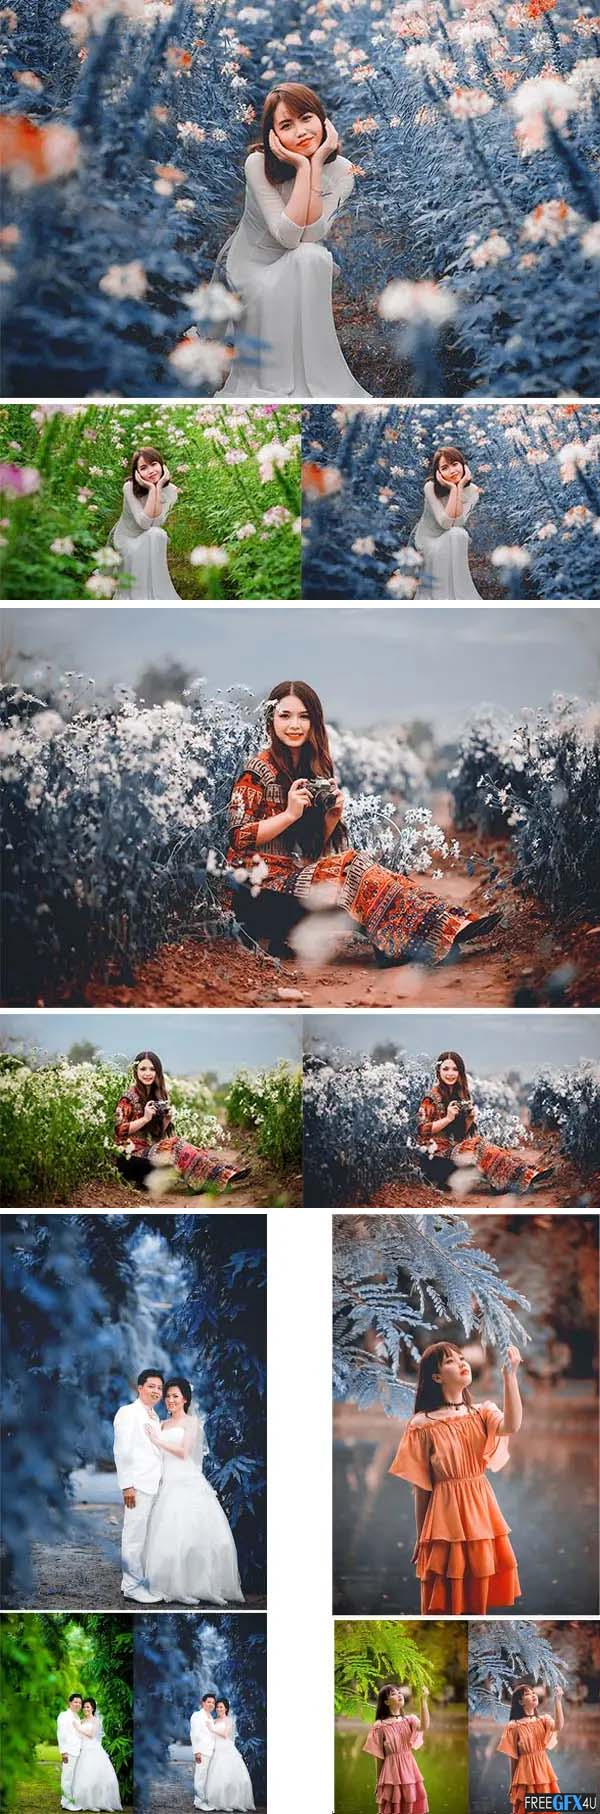 Cinematic Color Grading Effects Photoshop Action